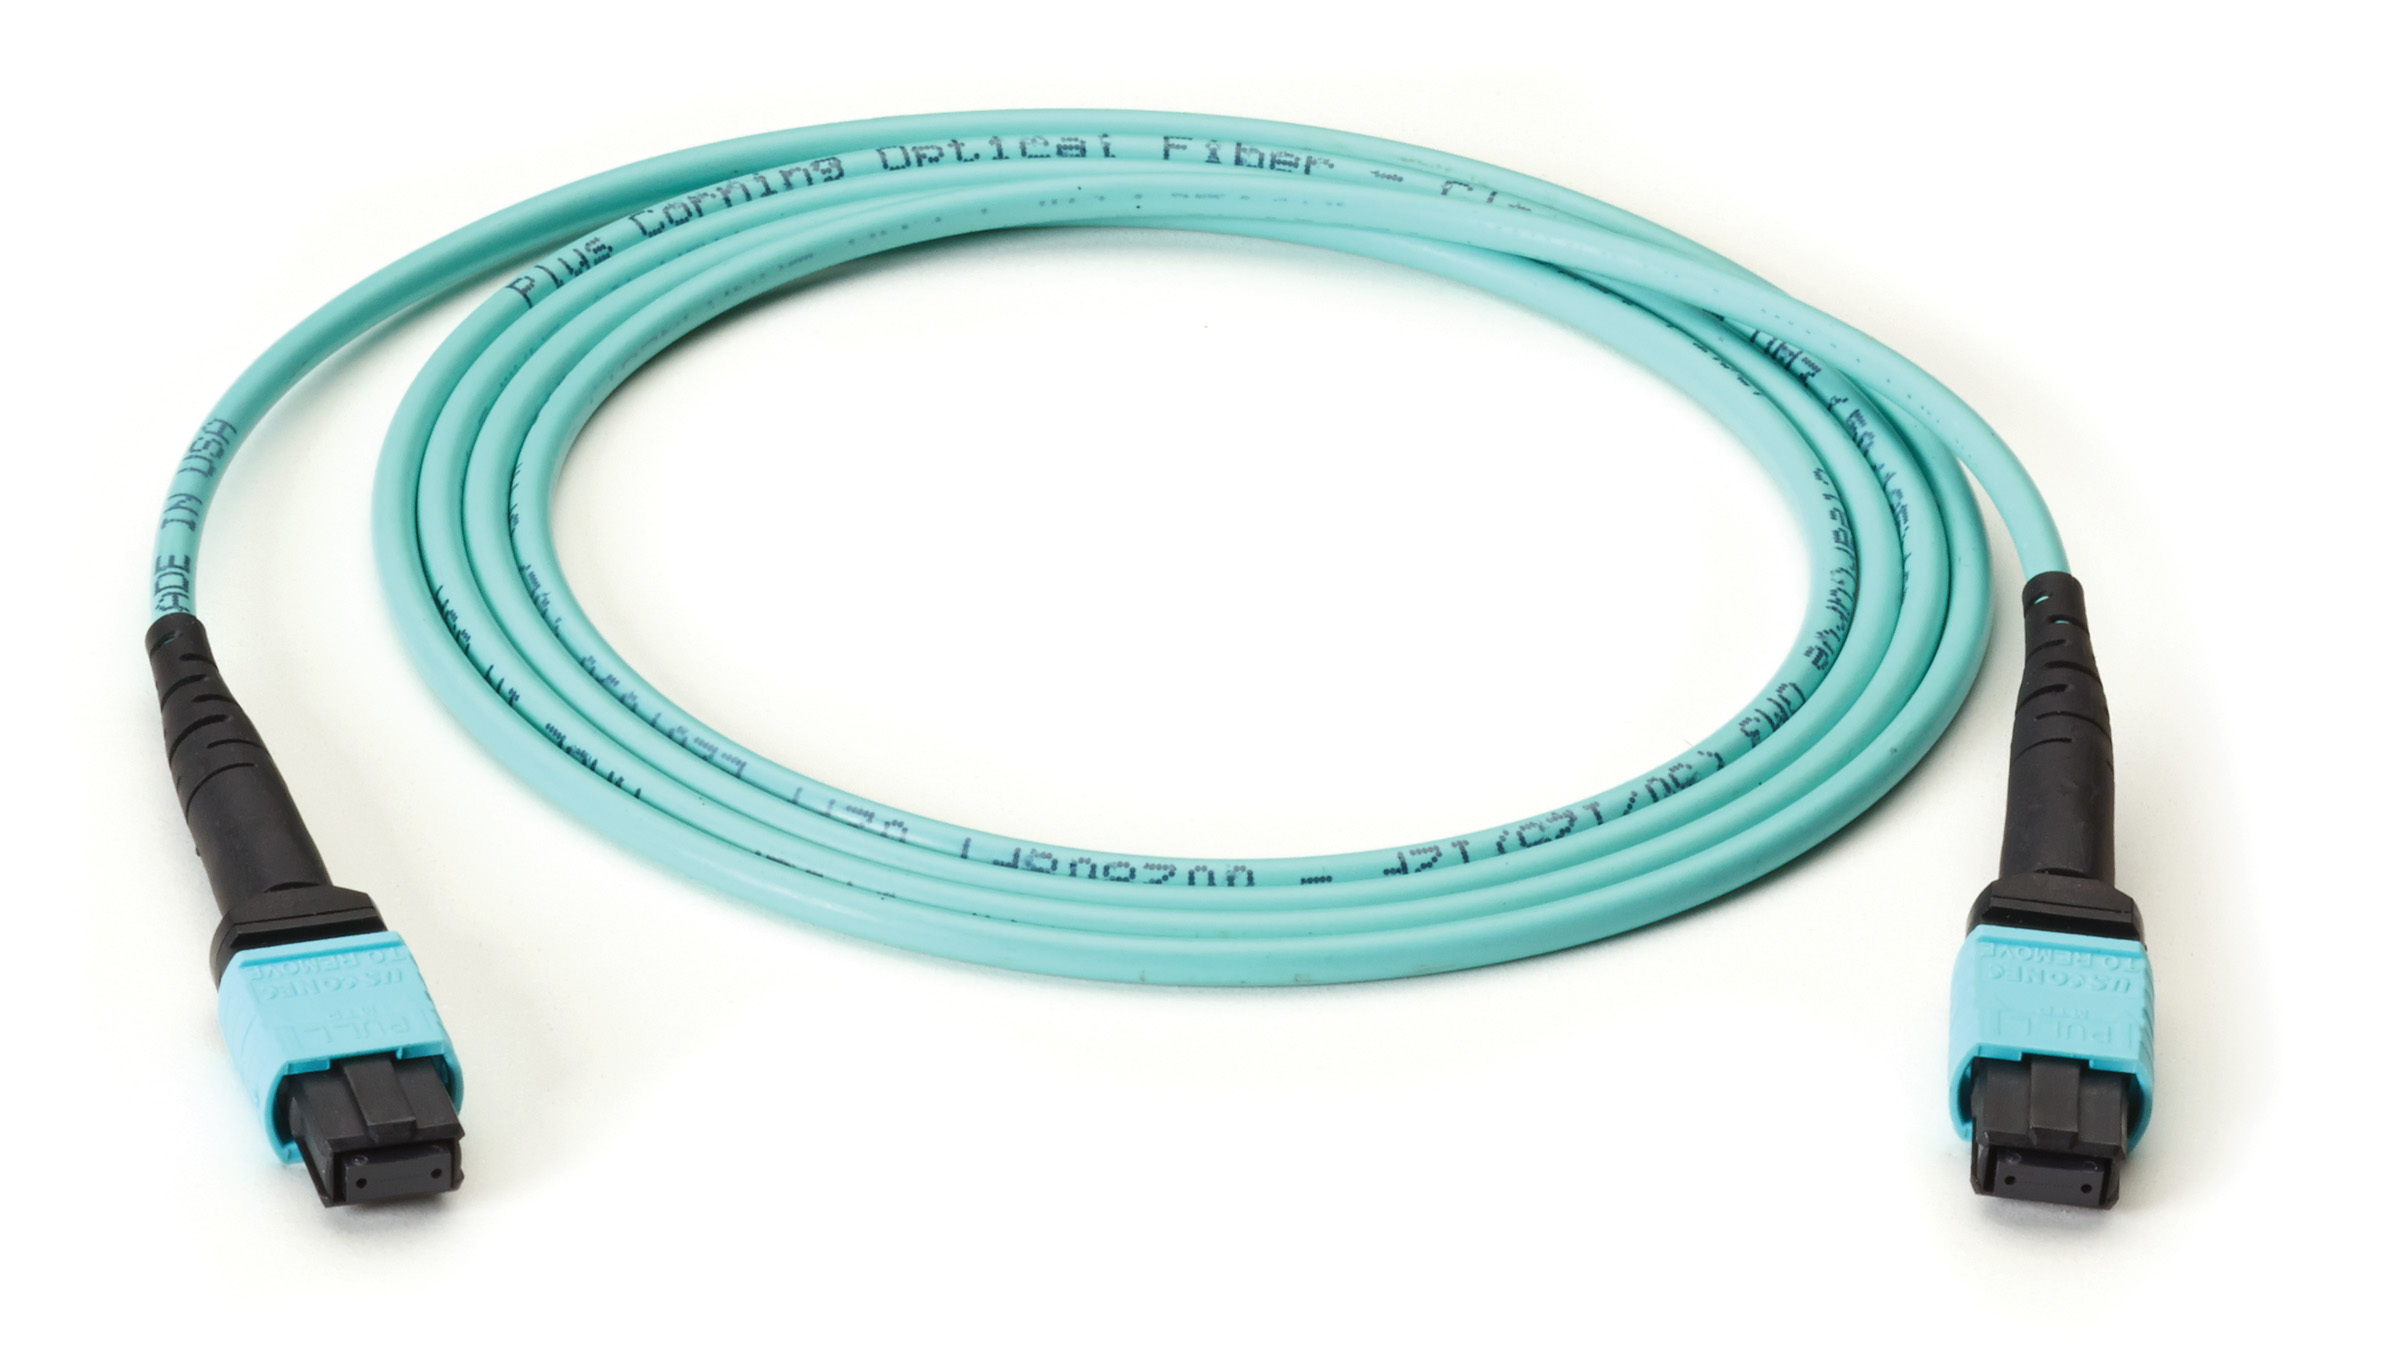 Mtp Om3 Trunk Cable Fiber Optic Straight Through Network Wiring Additional Product Image